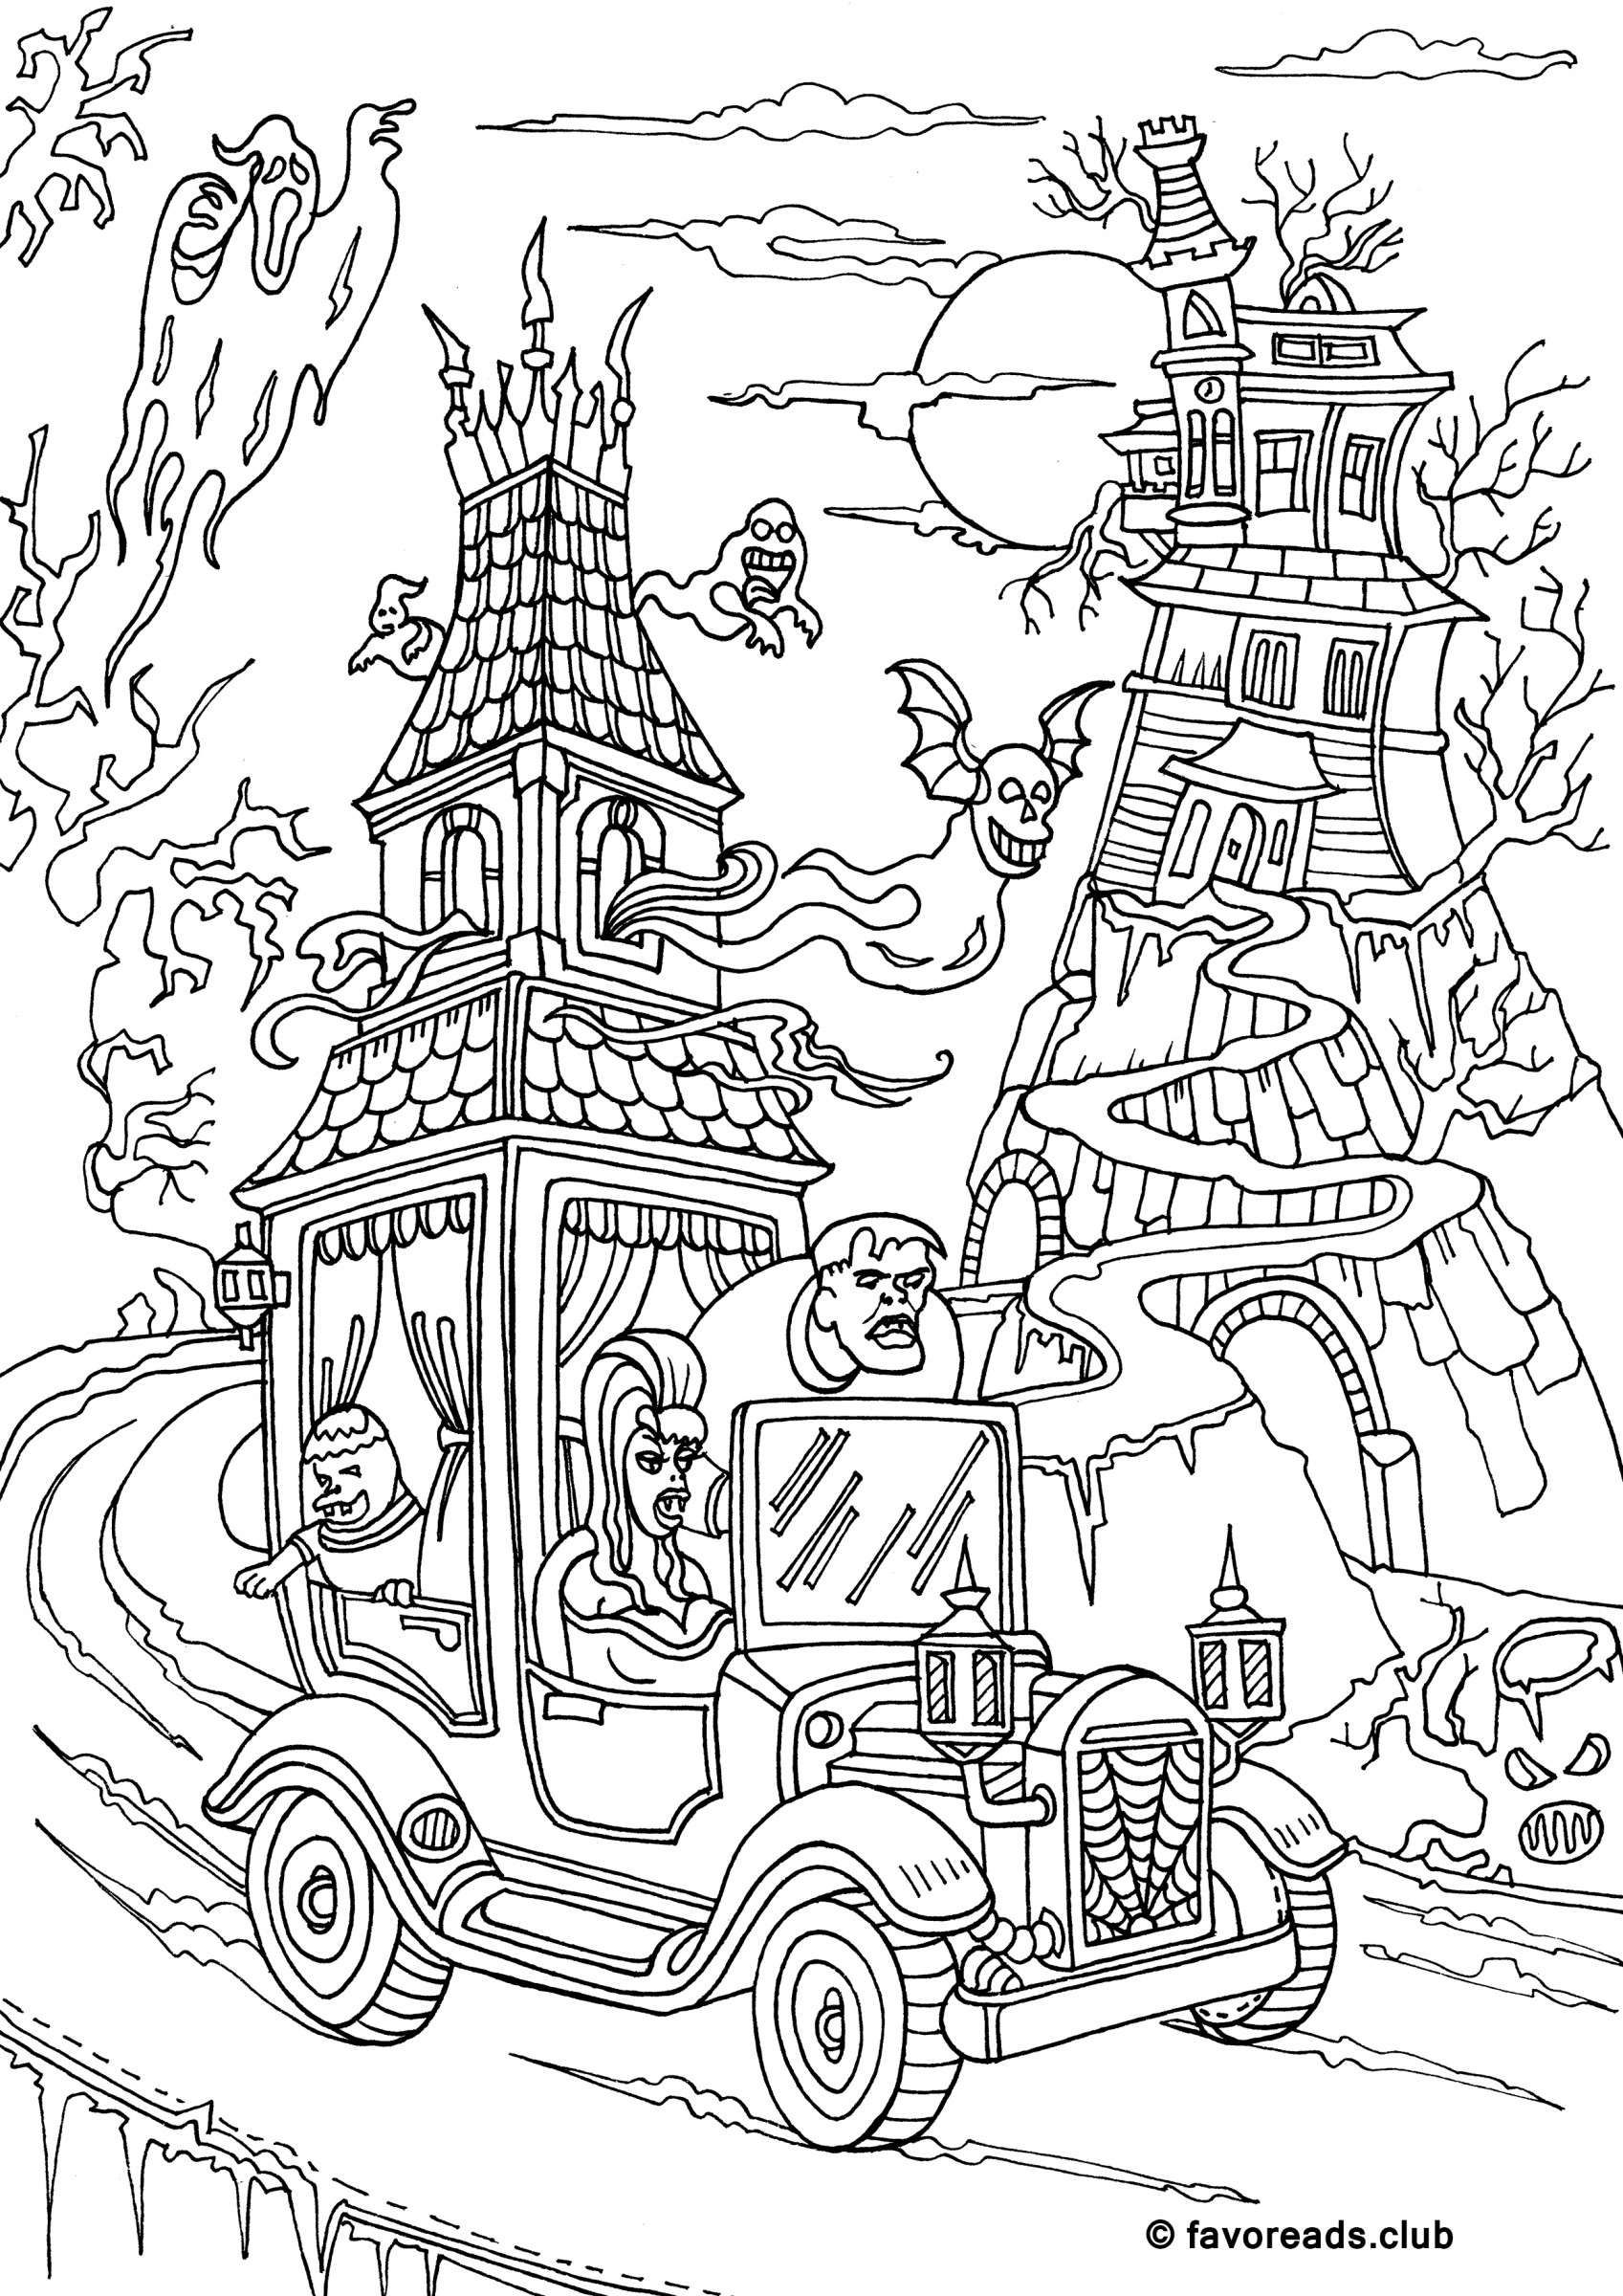 Free Printable Coloring Pages for Adults Monster mash